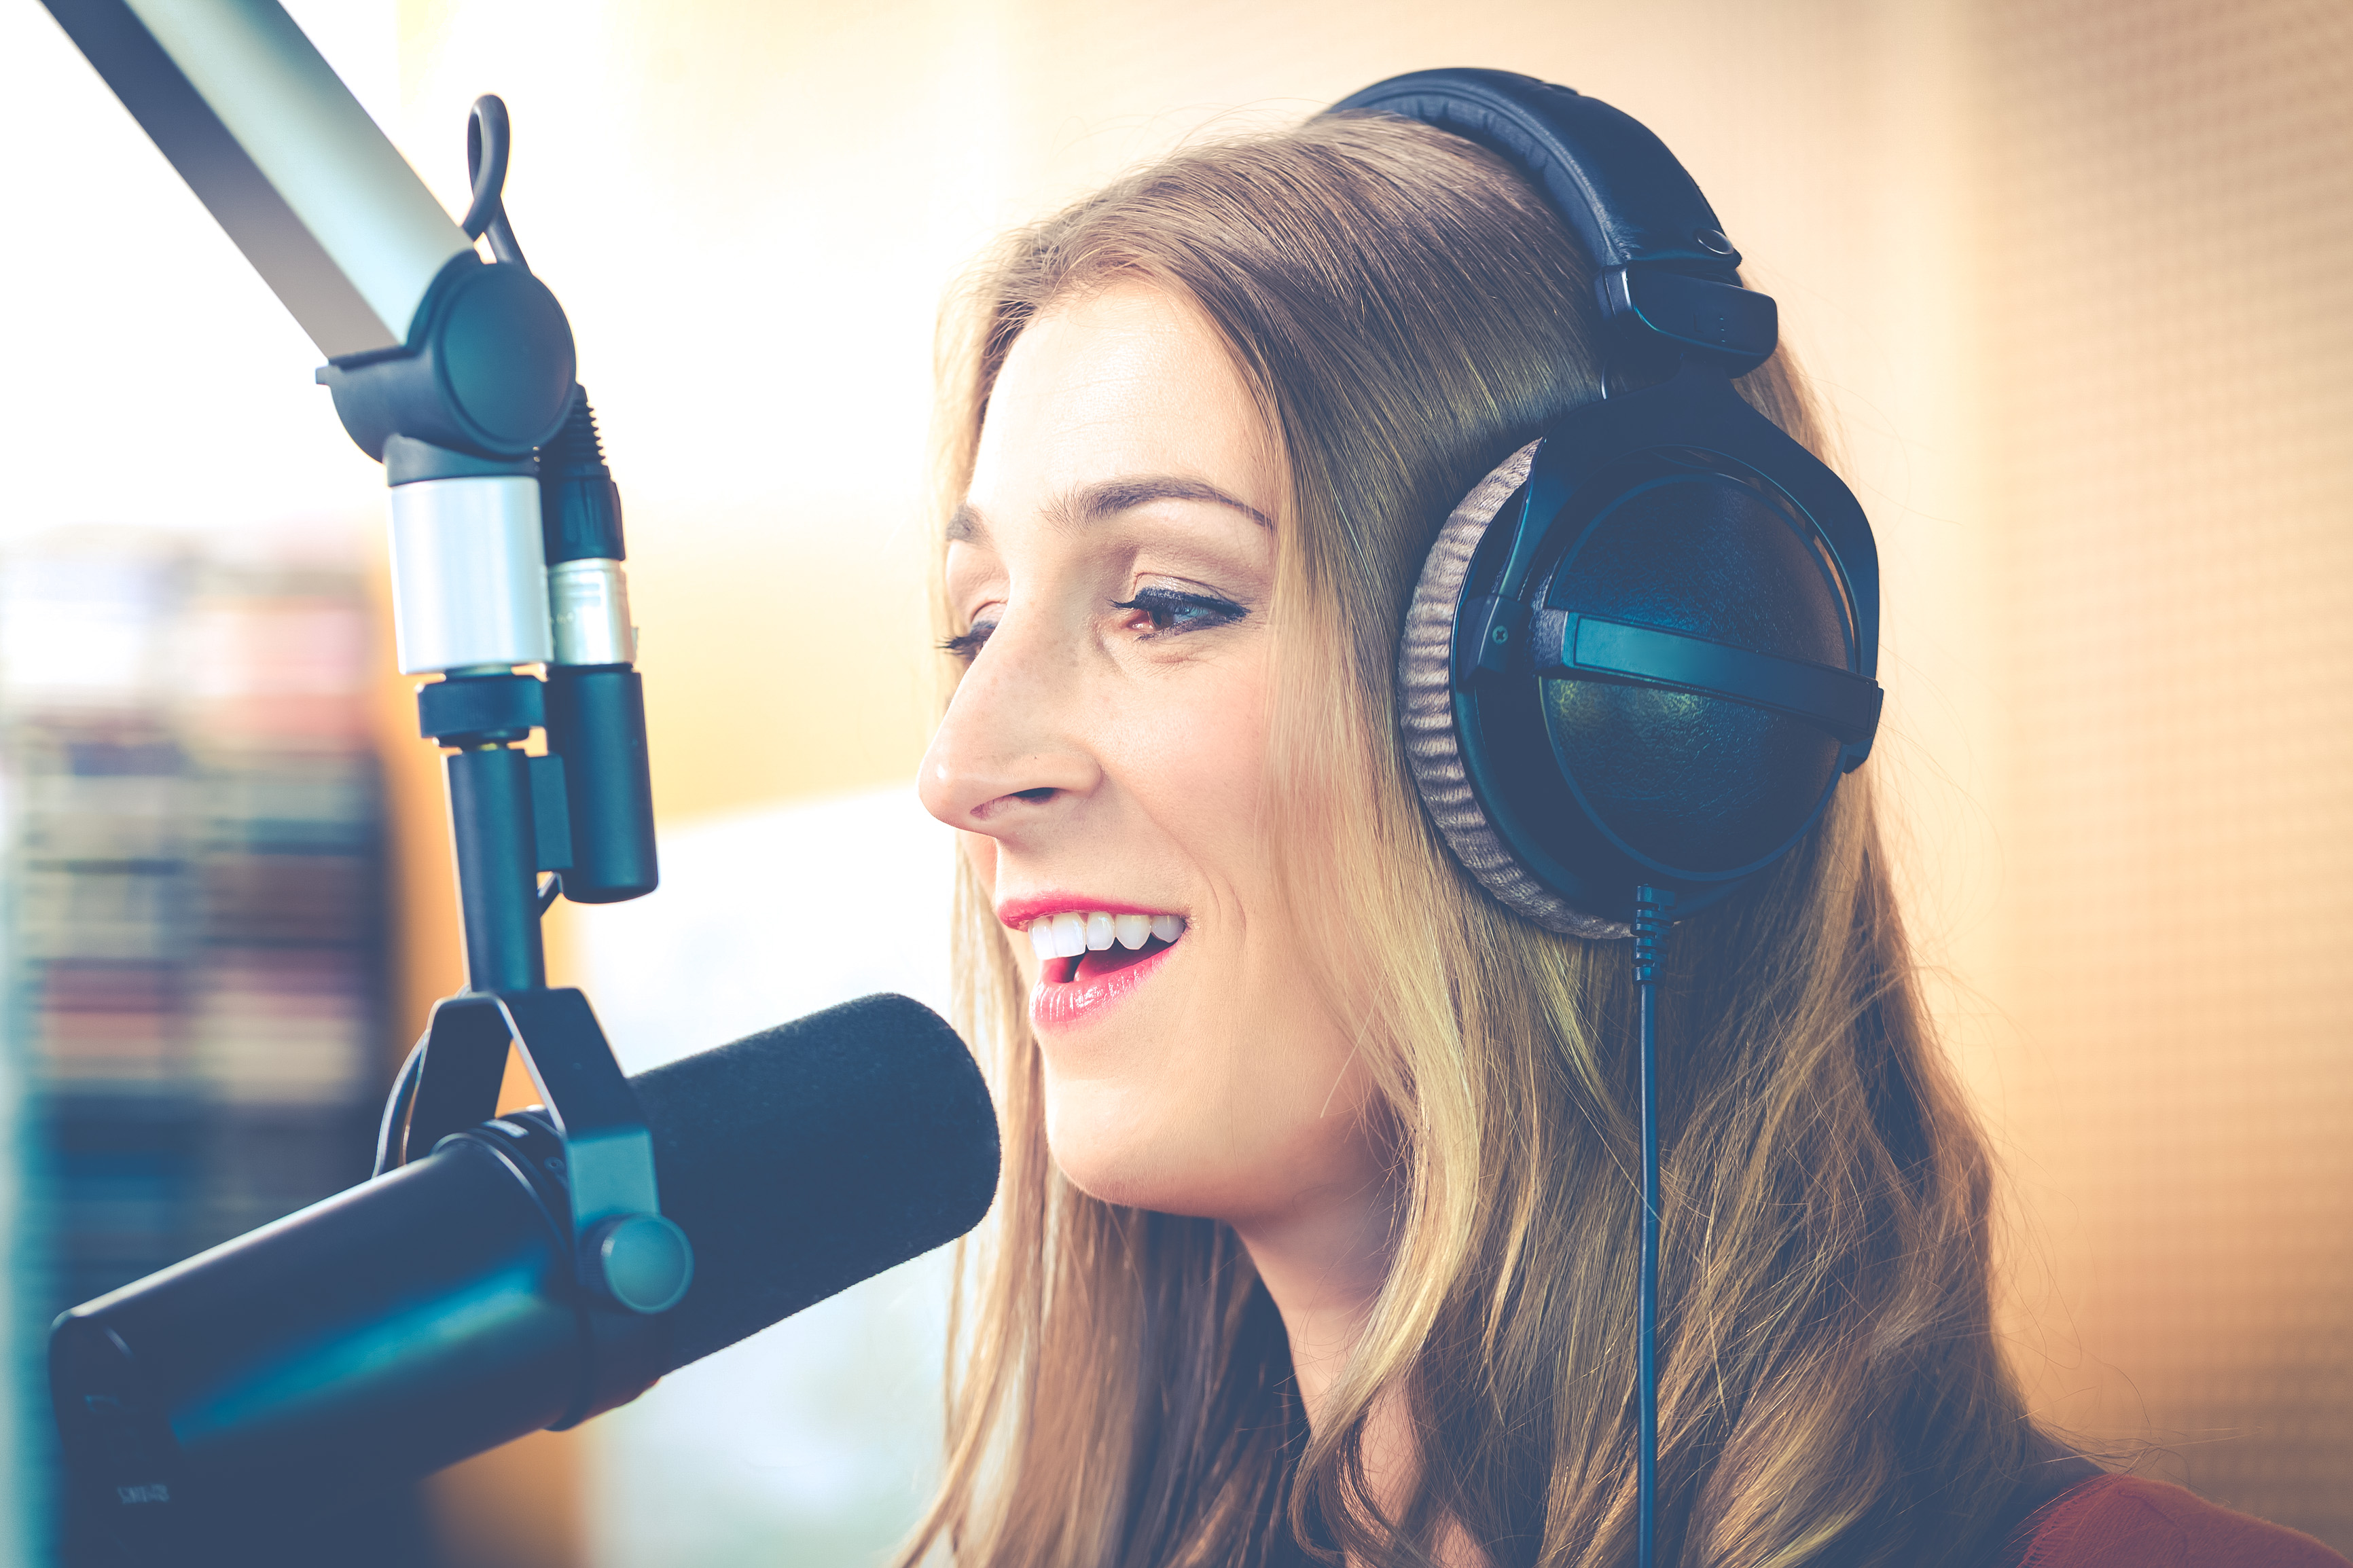 How To EQ Vocals: 5 Essential Tips For A Radio-Ready Sound